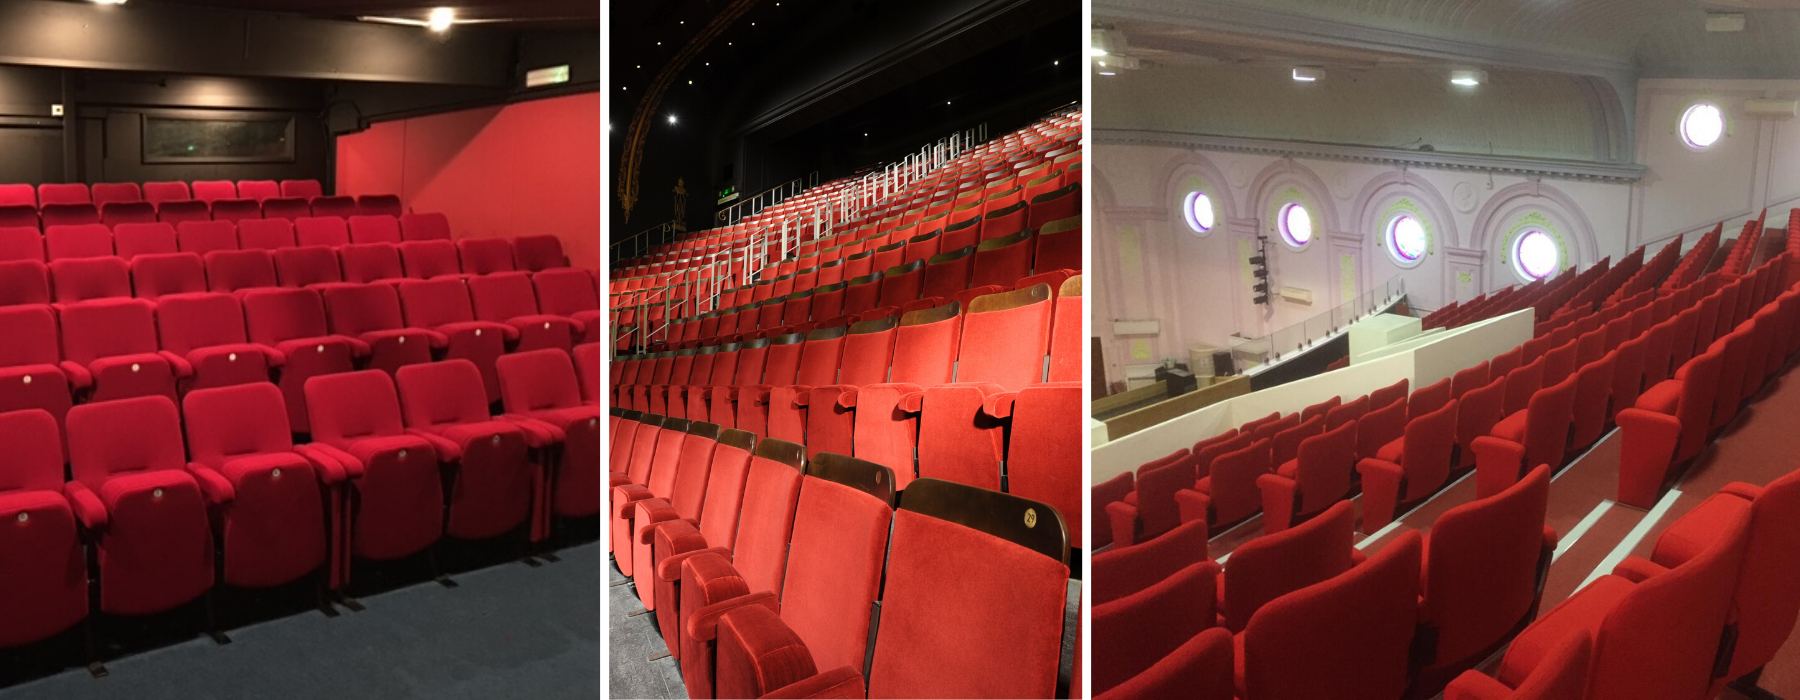 Red fabric colour for fixed seating shown in 3 different theatre auditoria settings